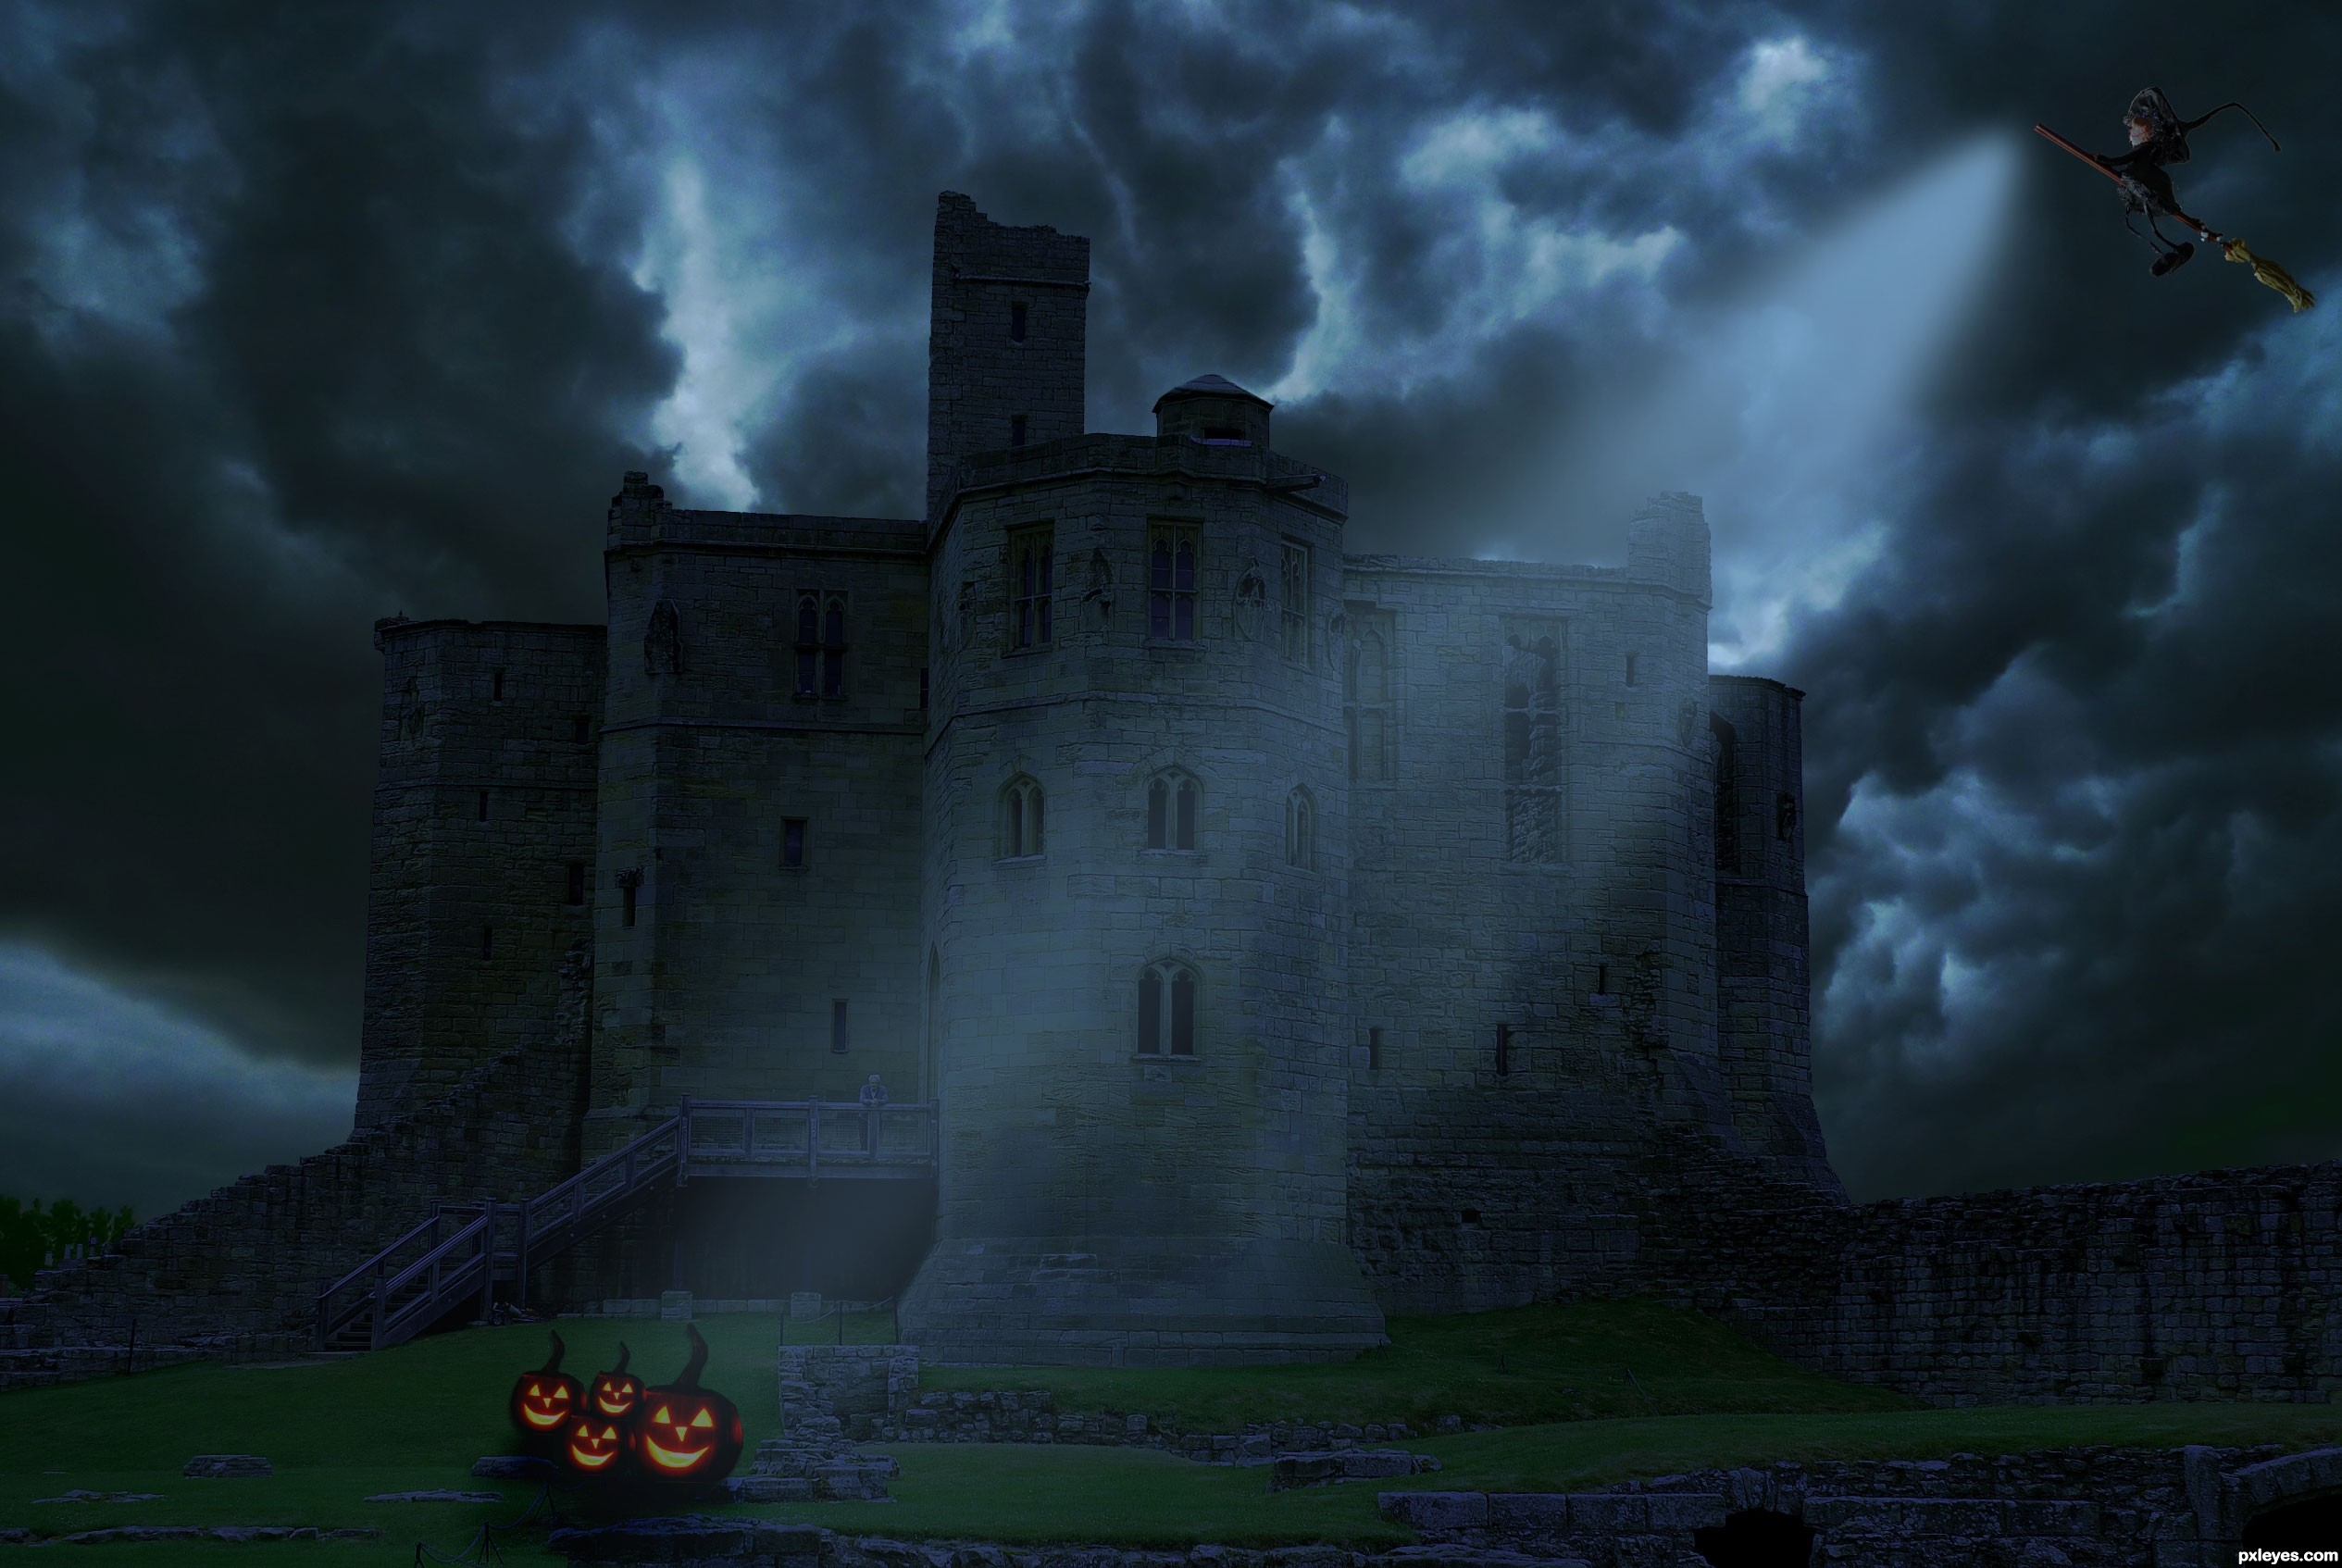 The Castle At Night Picture By Nishagandhi For Mixed Manipulations